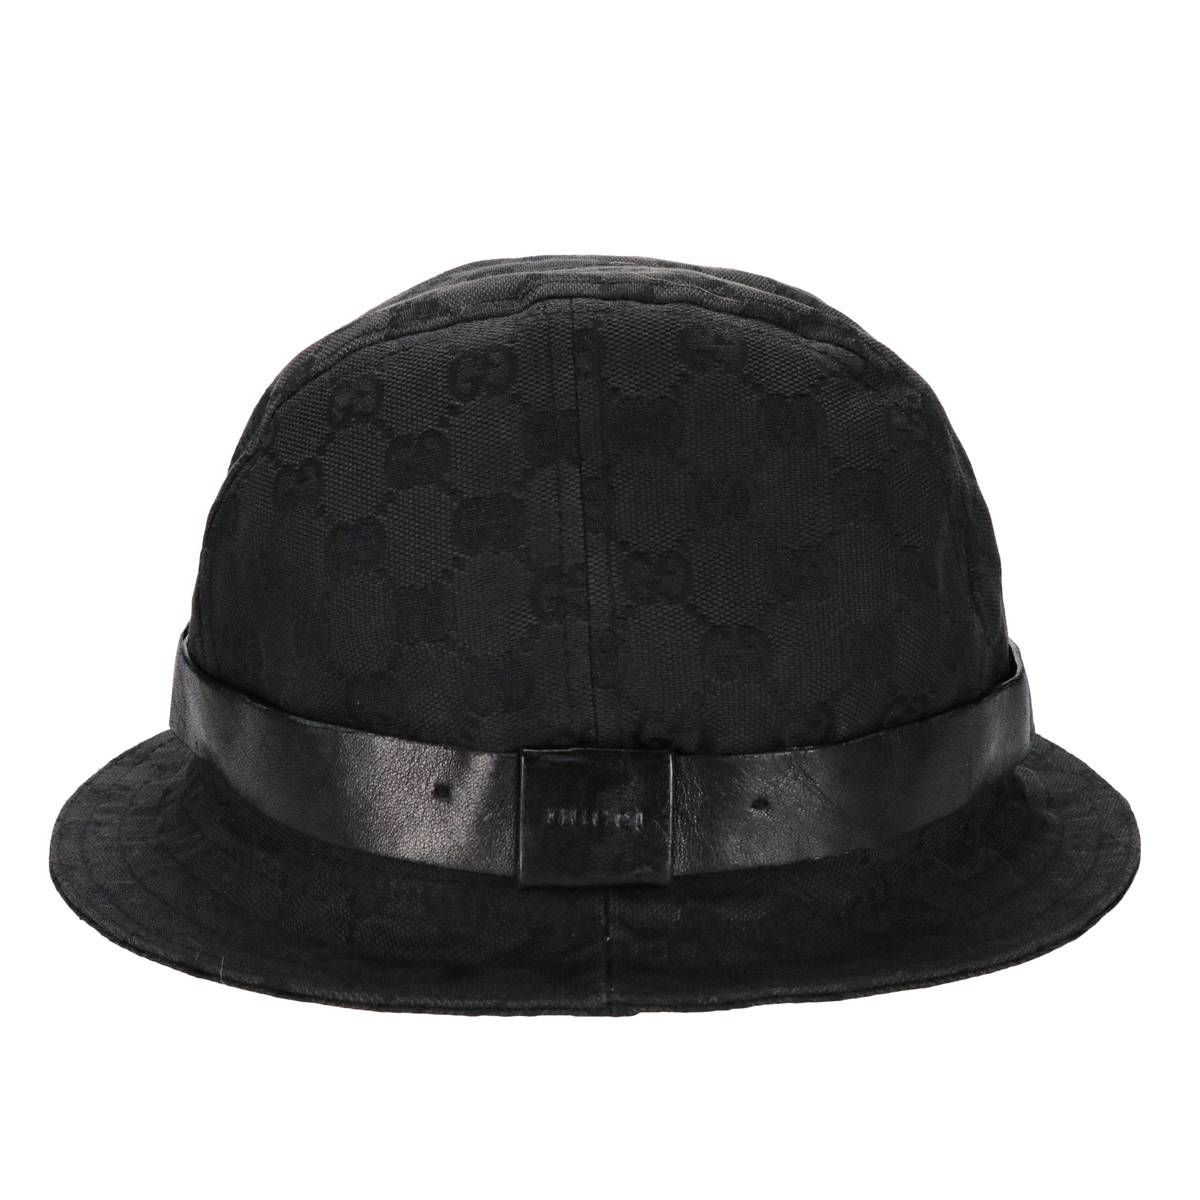 ddb1b28807d Gucci GUCCI MONOGRAM BUCKET HAT Size one size - Hats for Sale - Grailed